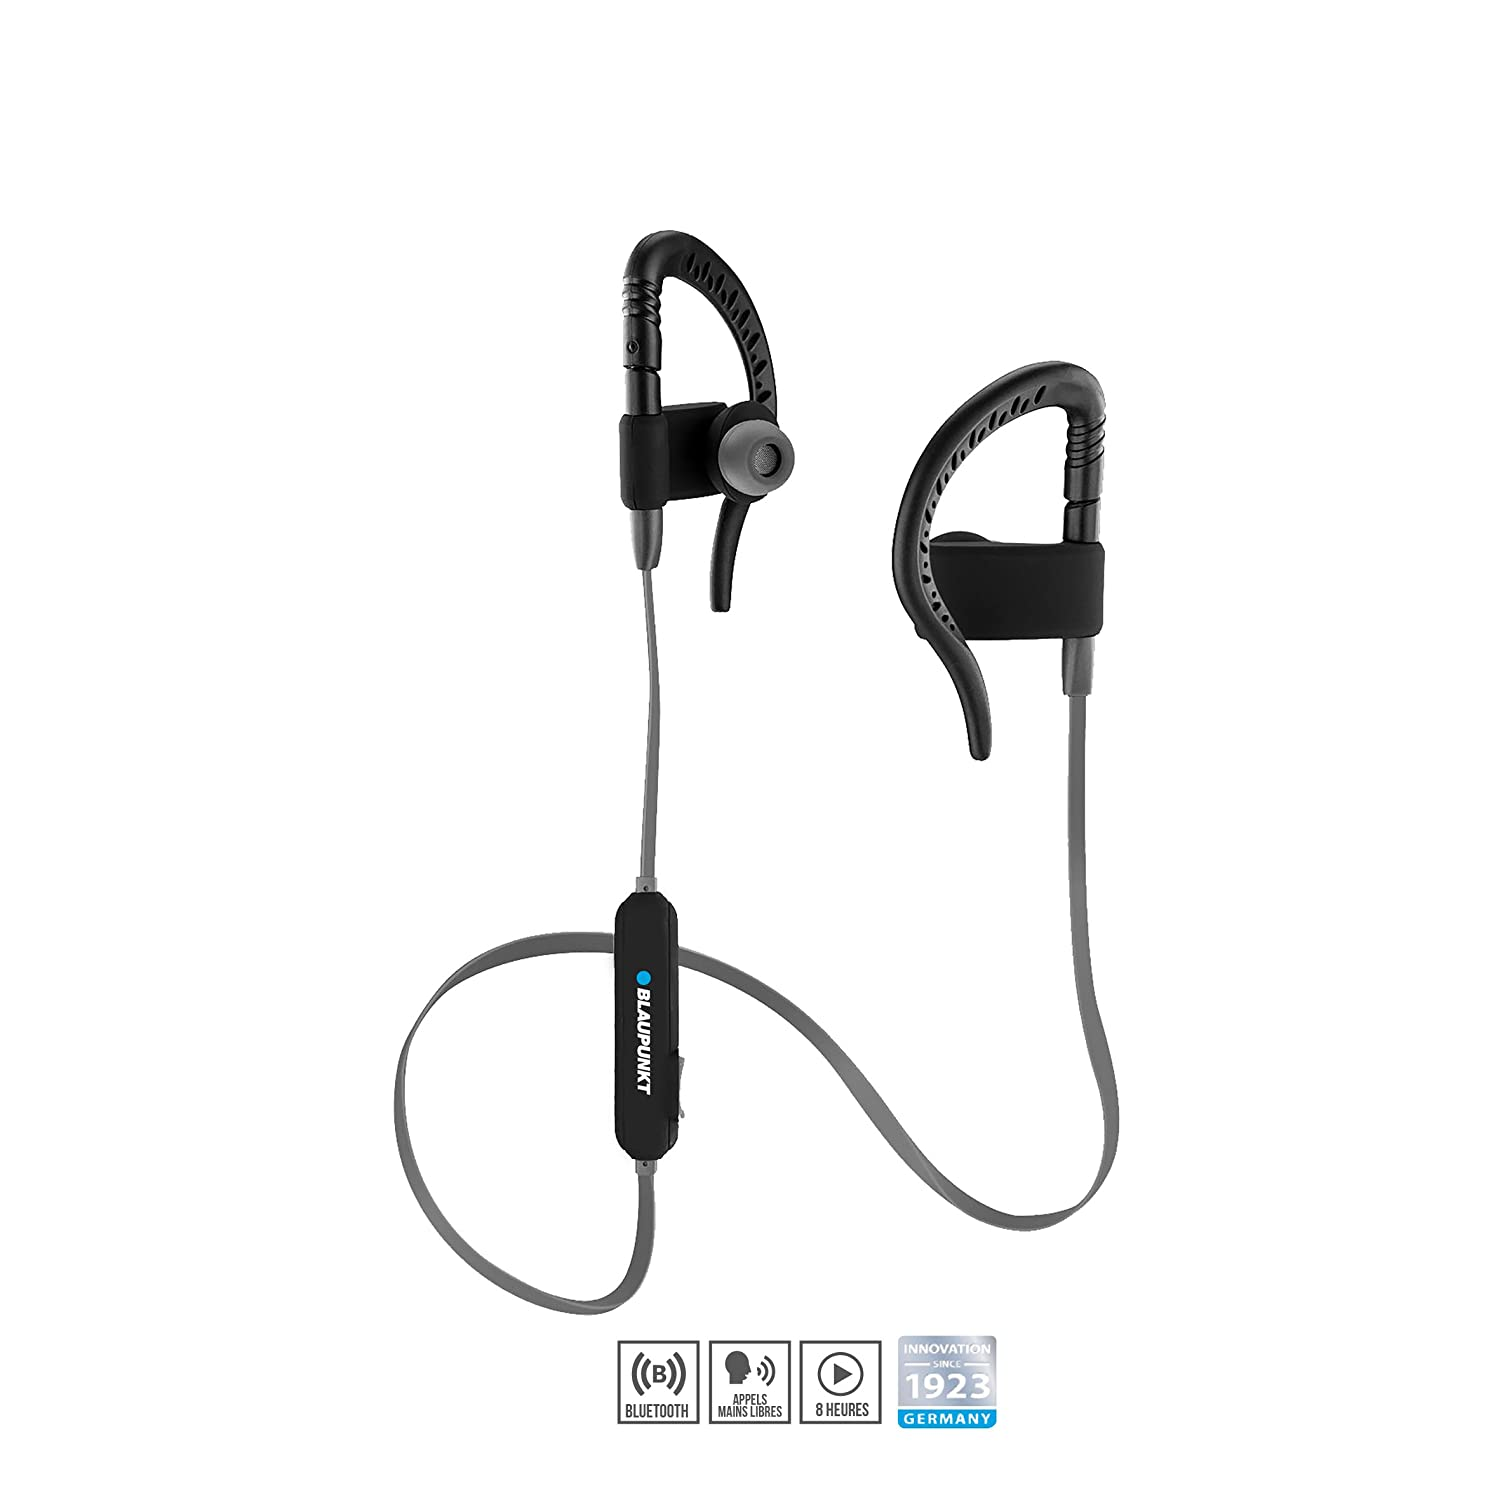 e98fcf217f6 Blaupunkt BLP4610.565 Wireless Bluetooth Headphones - Black: Amazon.co.uk:  Hi-Fi & Speakers